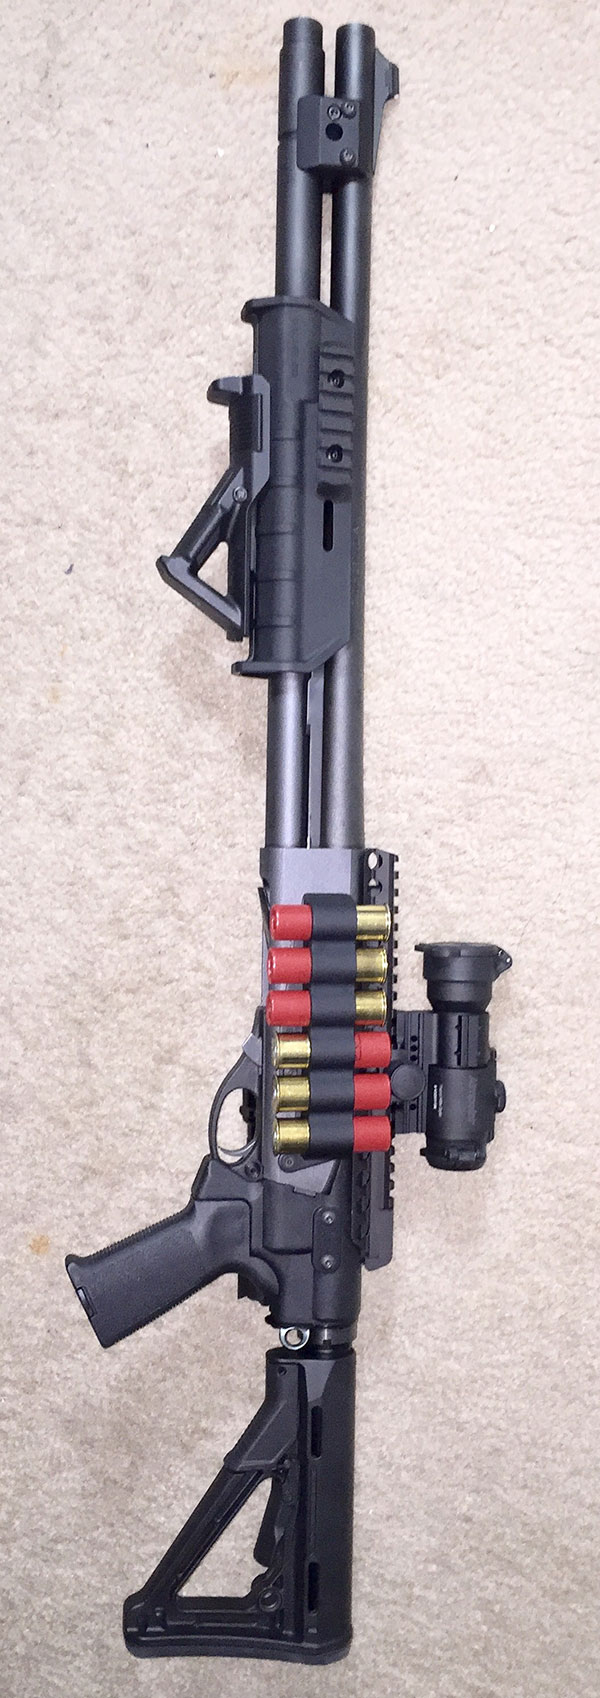 Remington 870 with Tactical Upgrades and Accessories